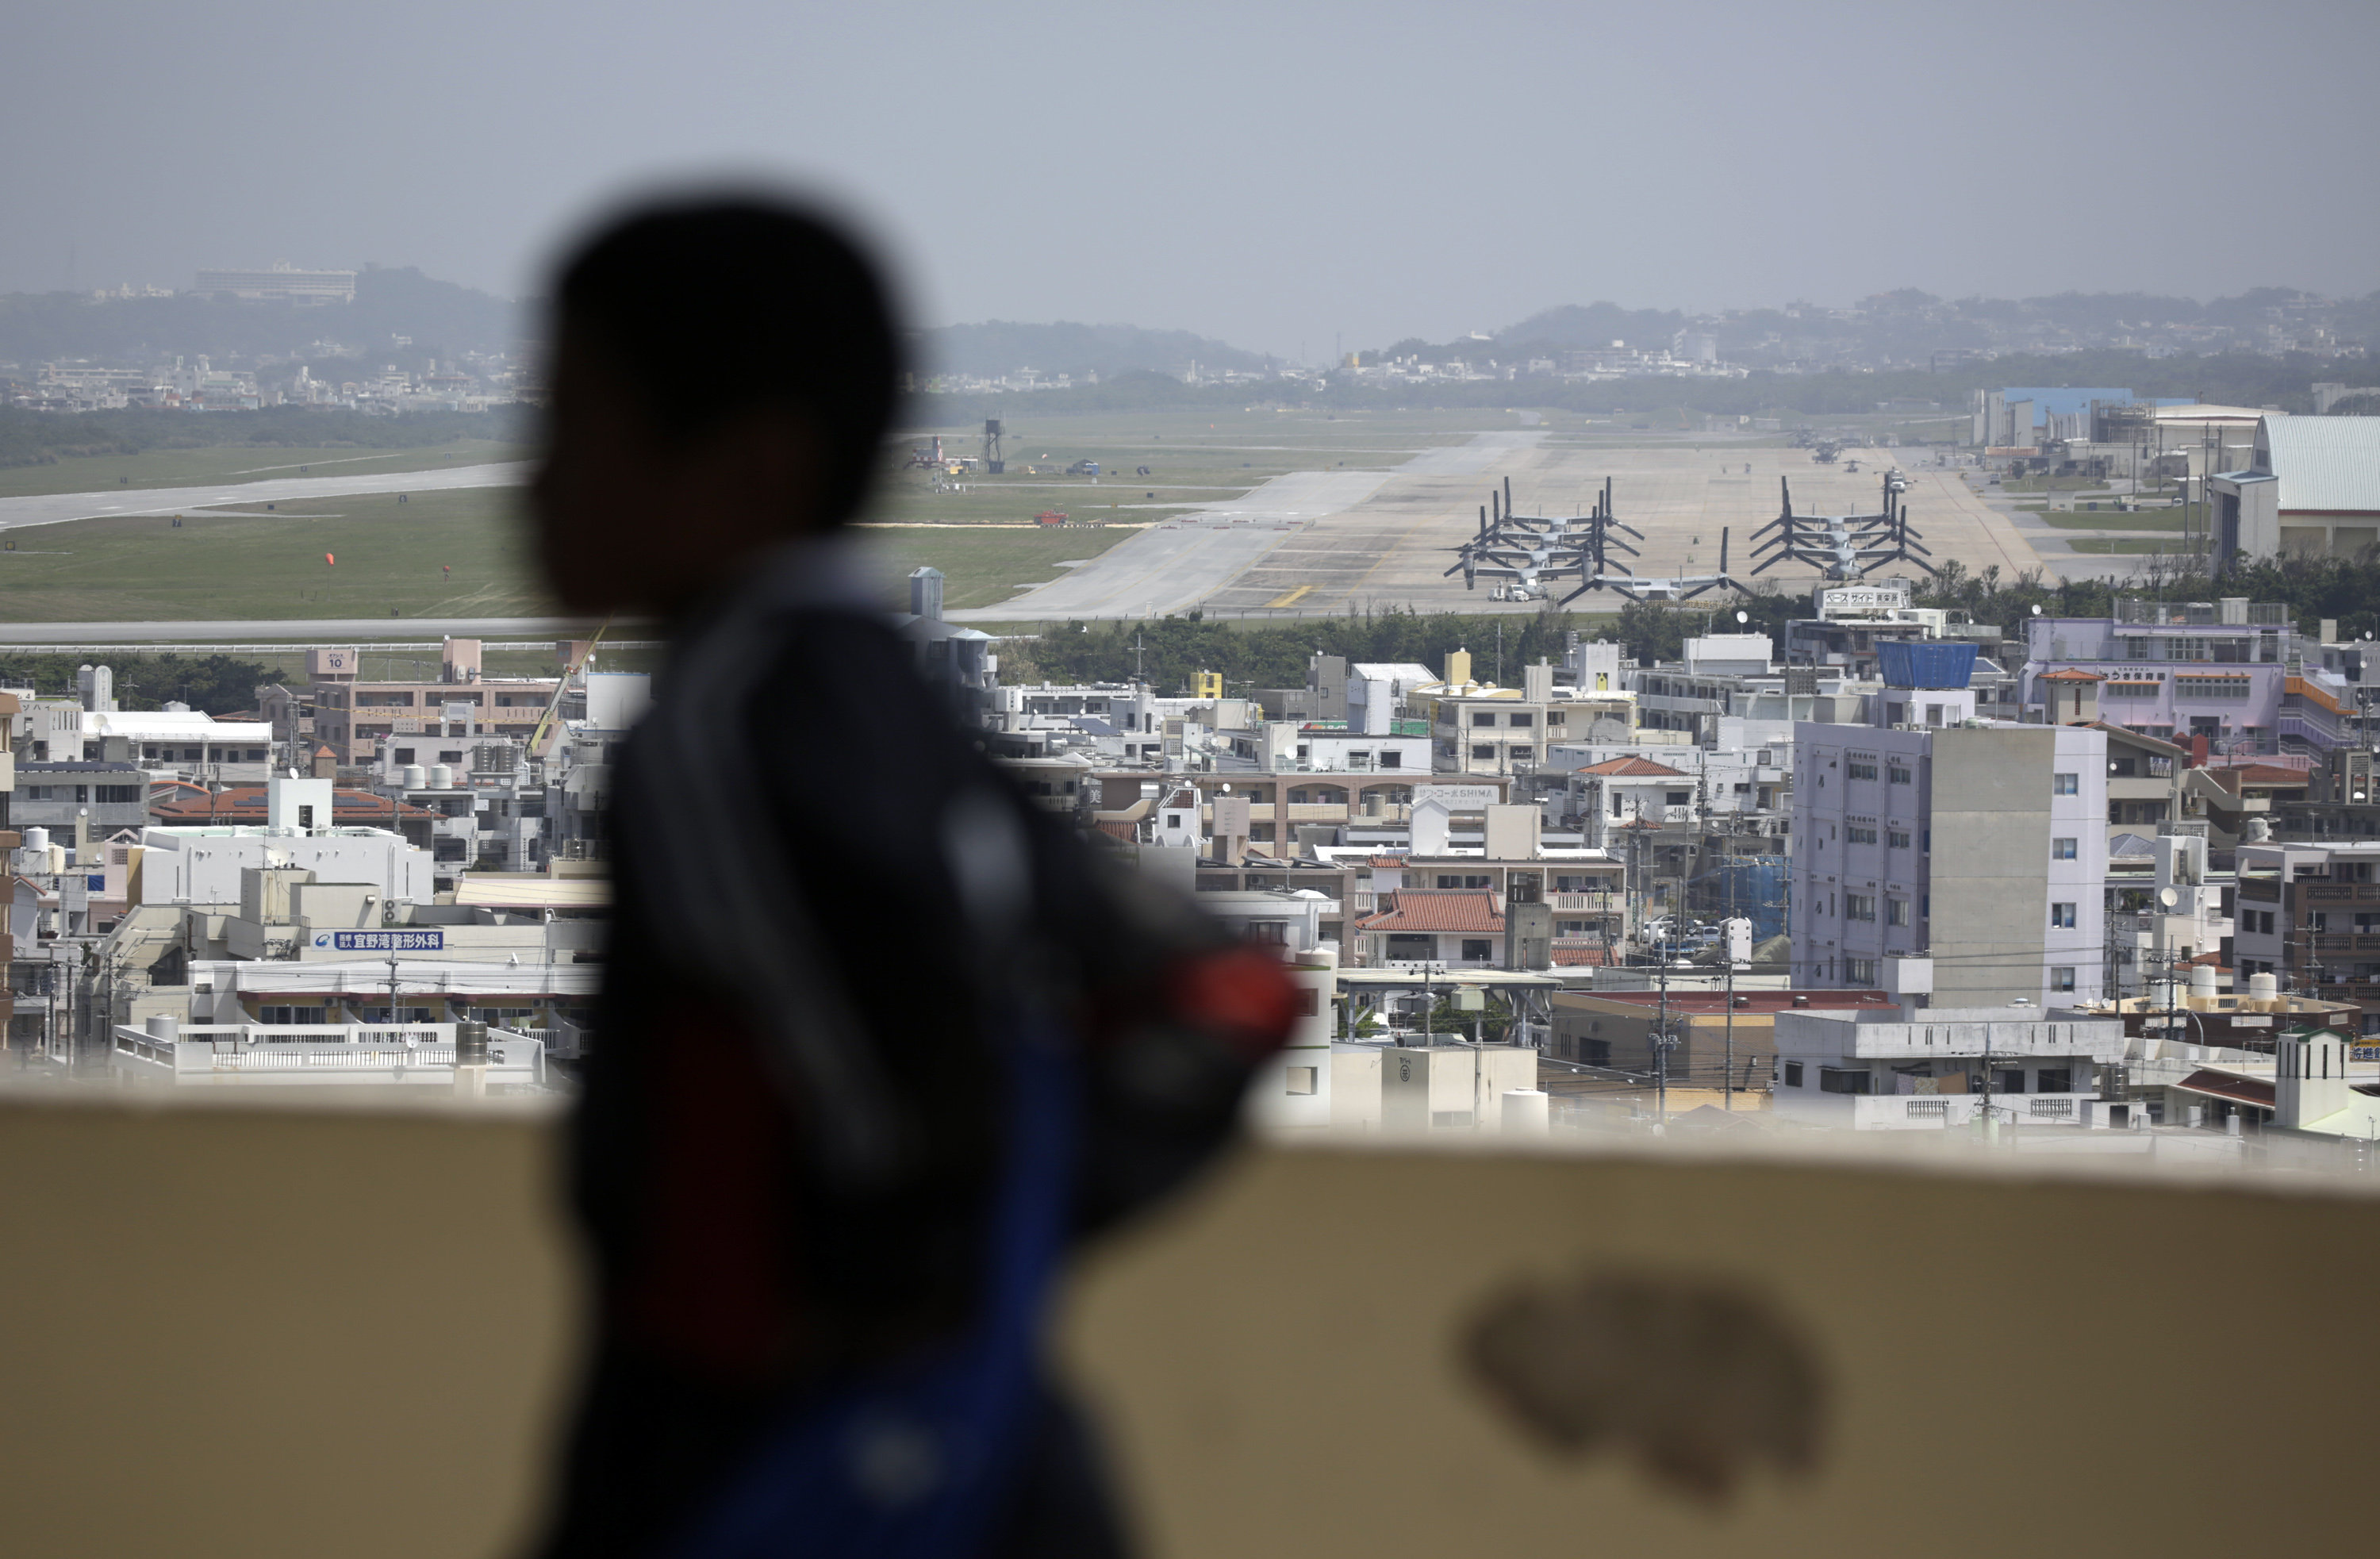 A child looks at the U.S. Marine Corps Futenma Air Station and the surrounding area from an observation deck at a park in Ginowan, Okinawa Prefecture on southern Japan.